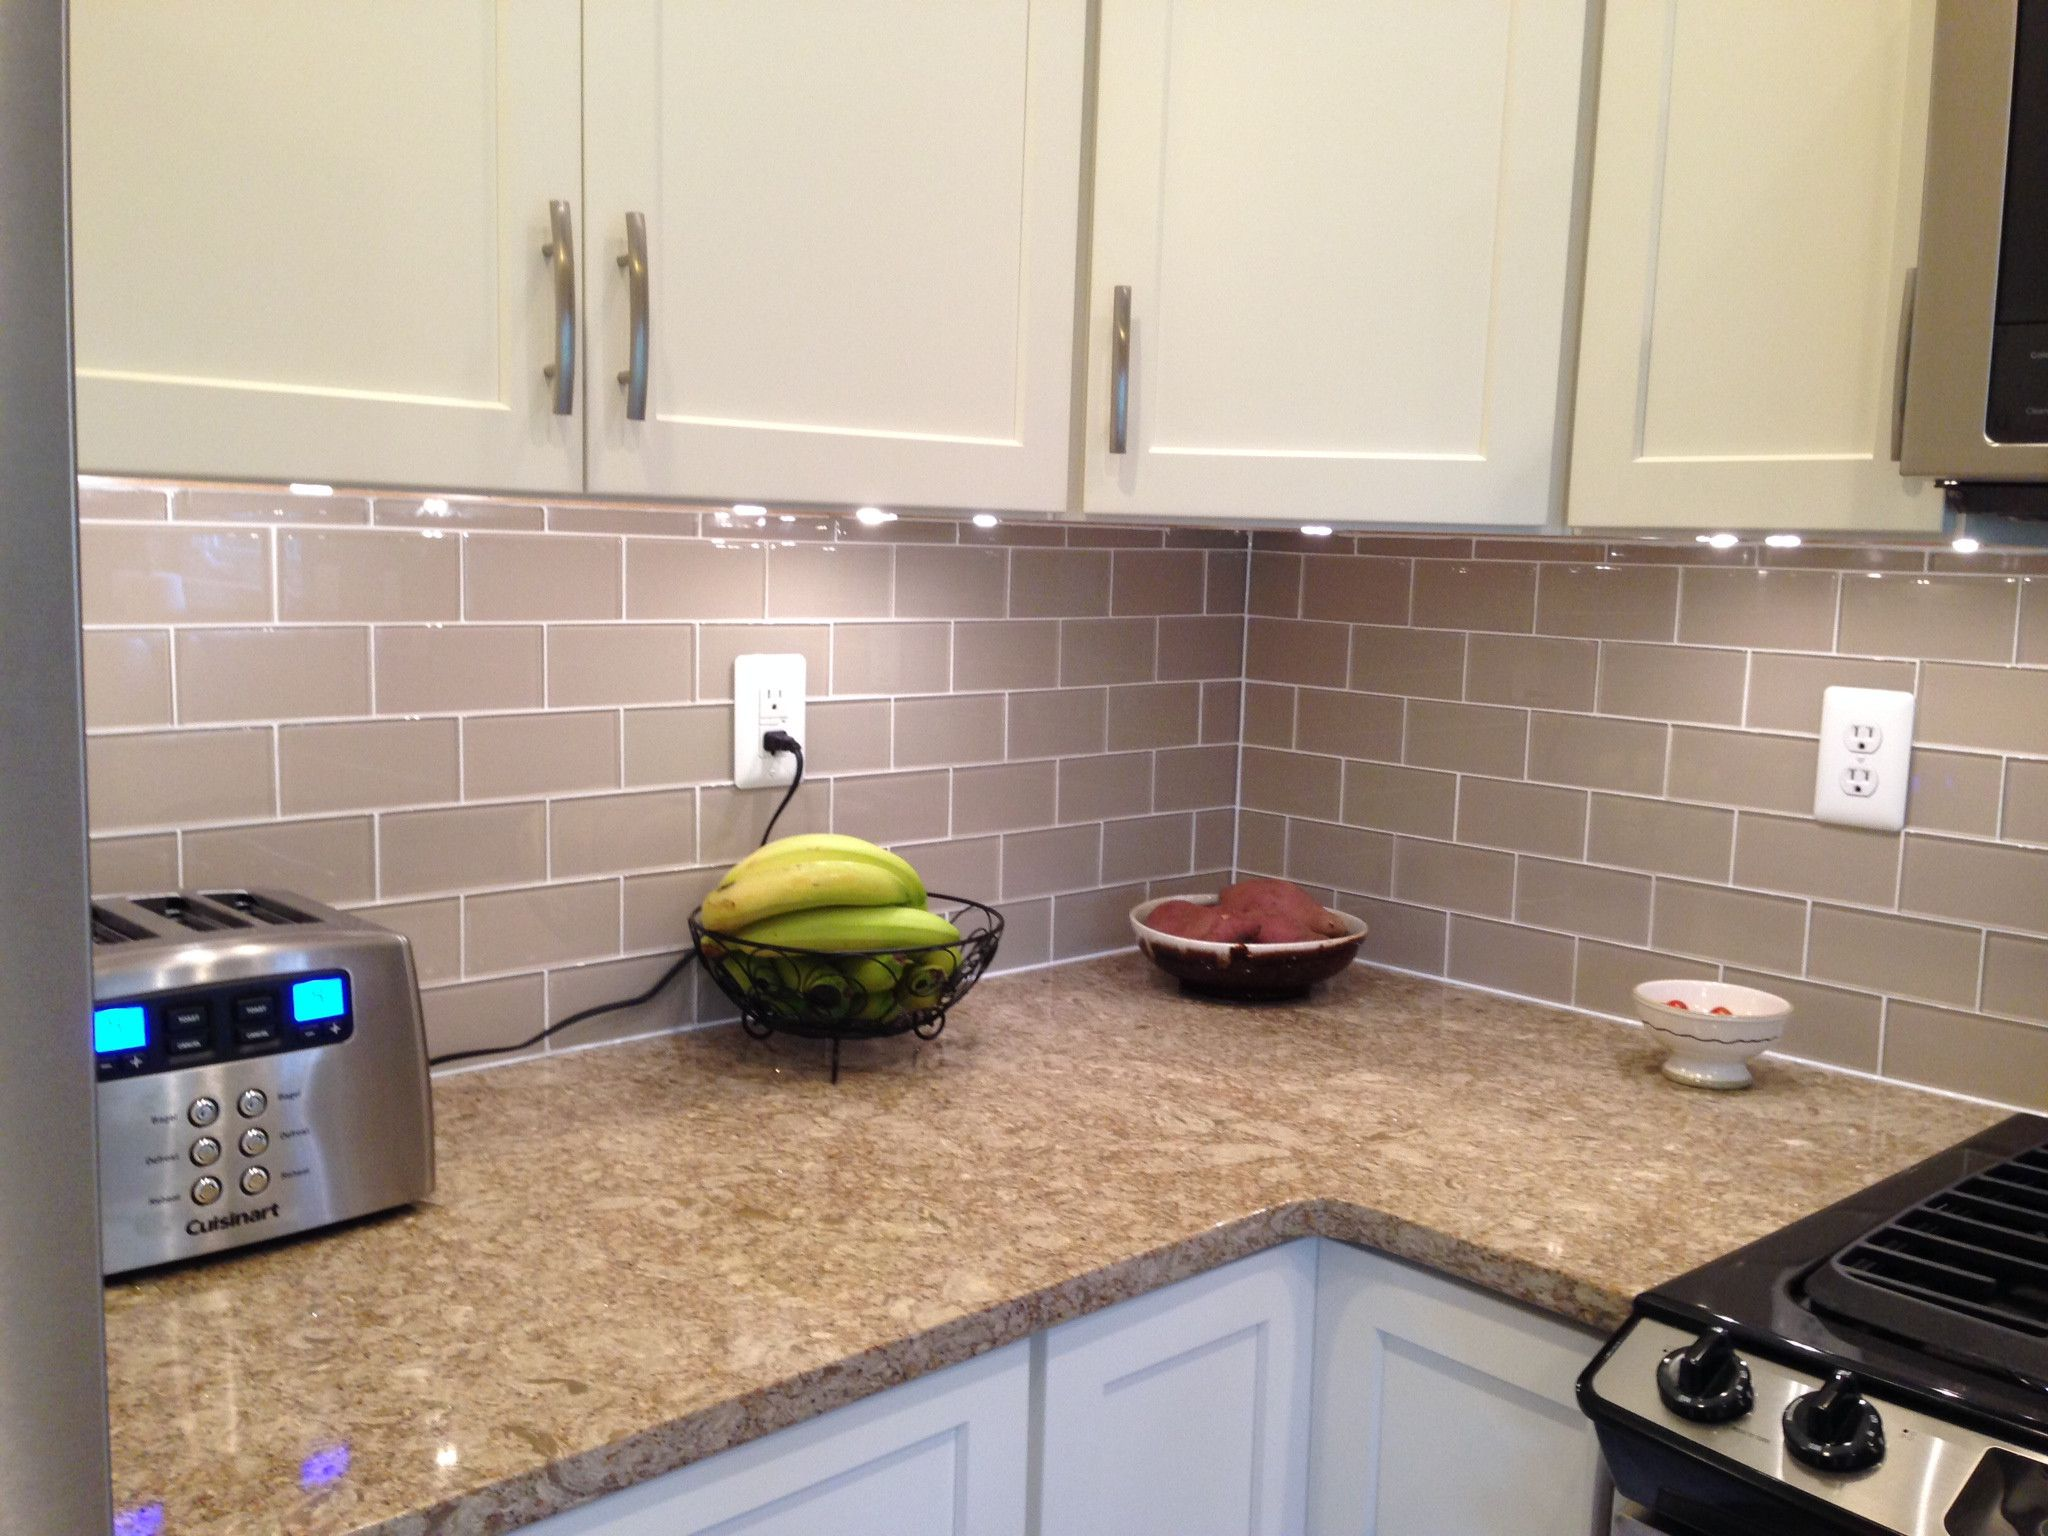 Tips On Choosing The Tile For Your Kitchen Backsplash